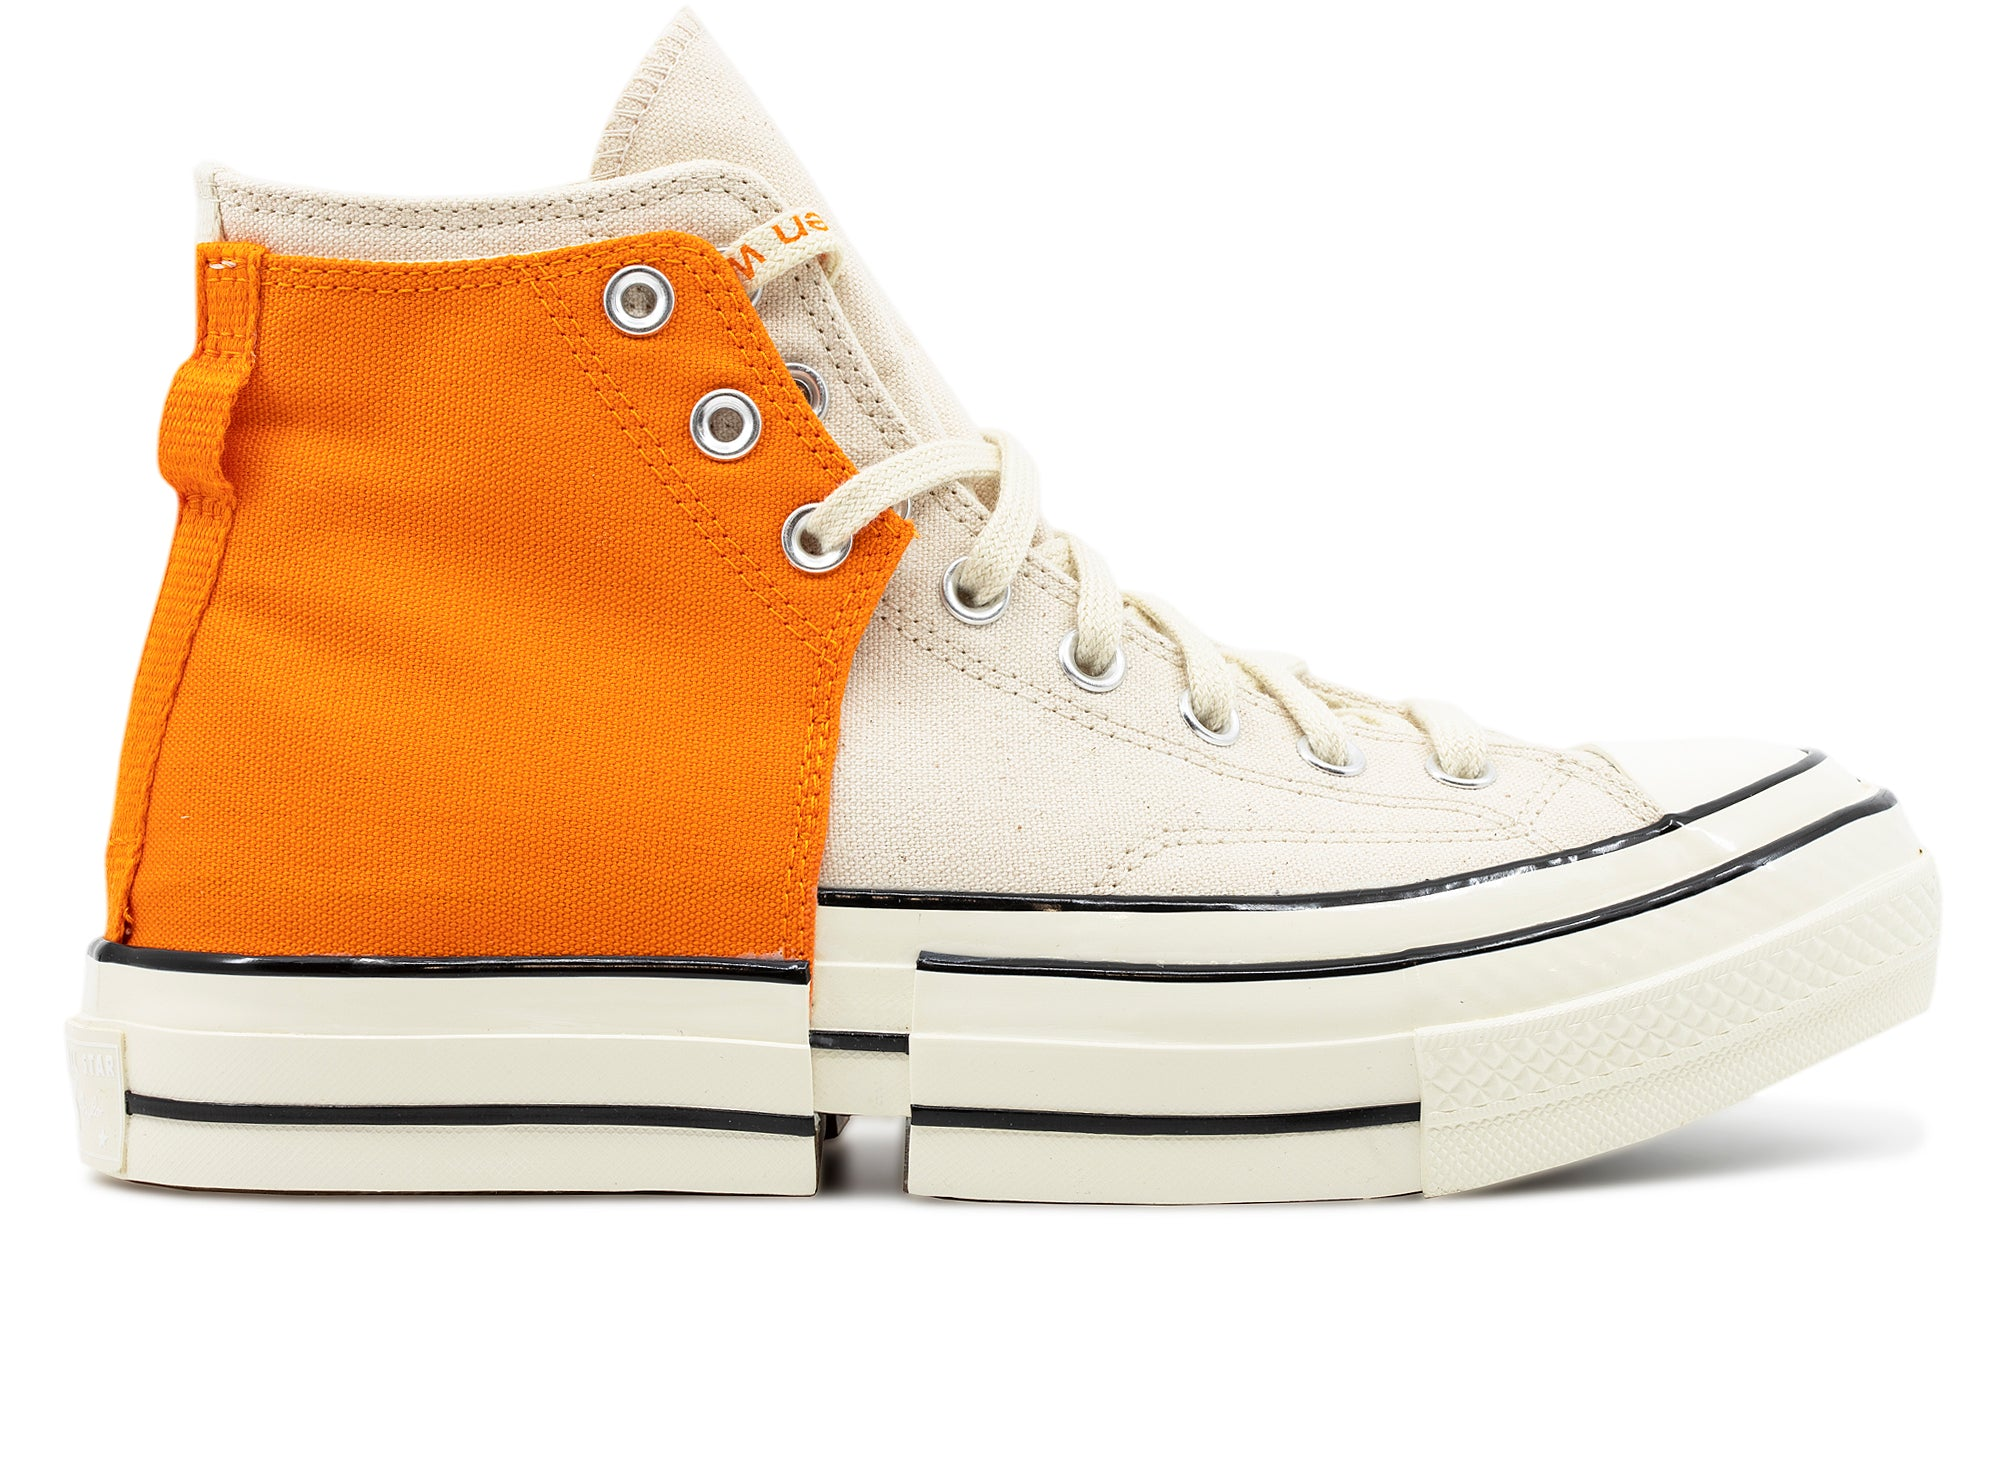 Converse x Feng Chen Wang Chuck 70 2 in 1 Hi in Orange xld